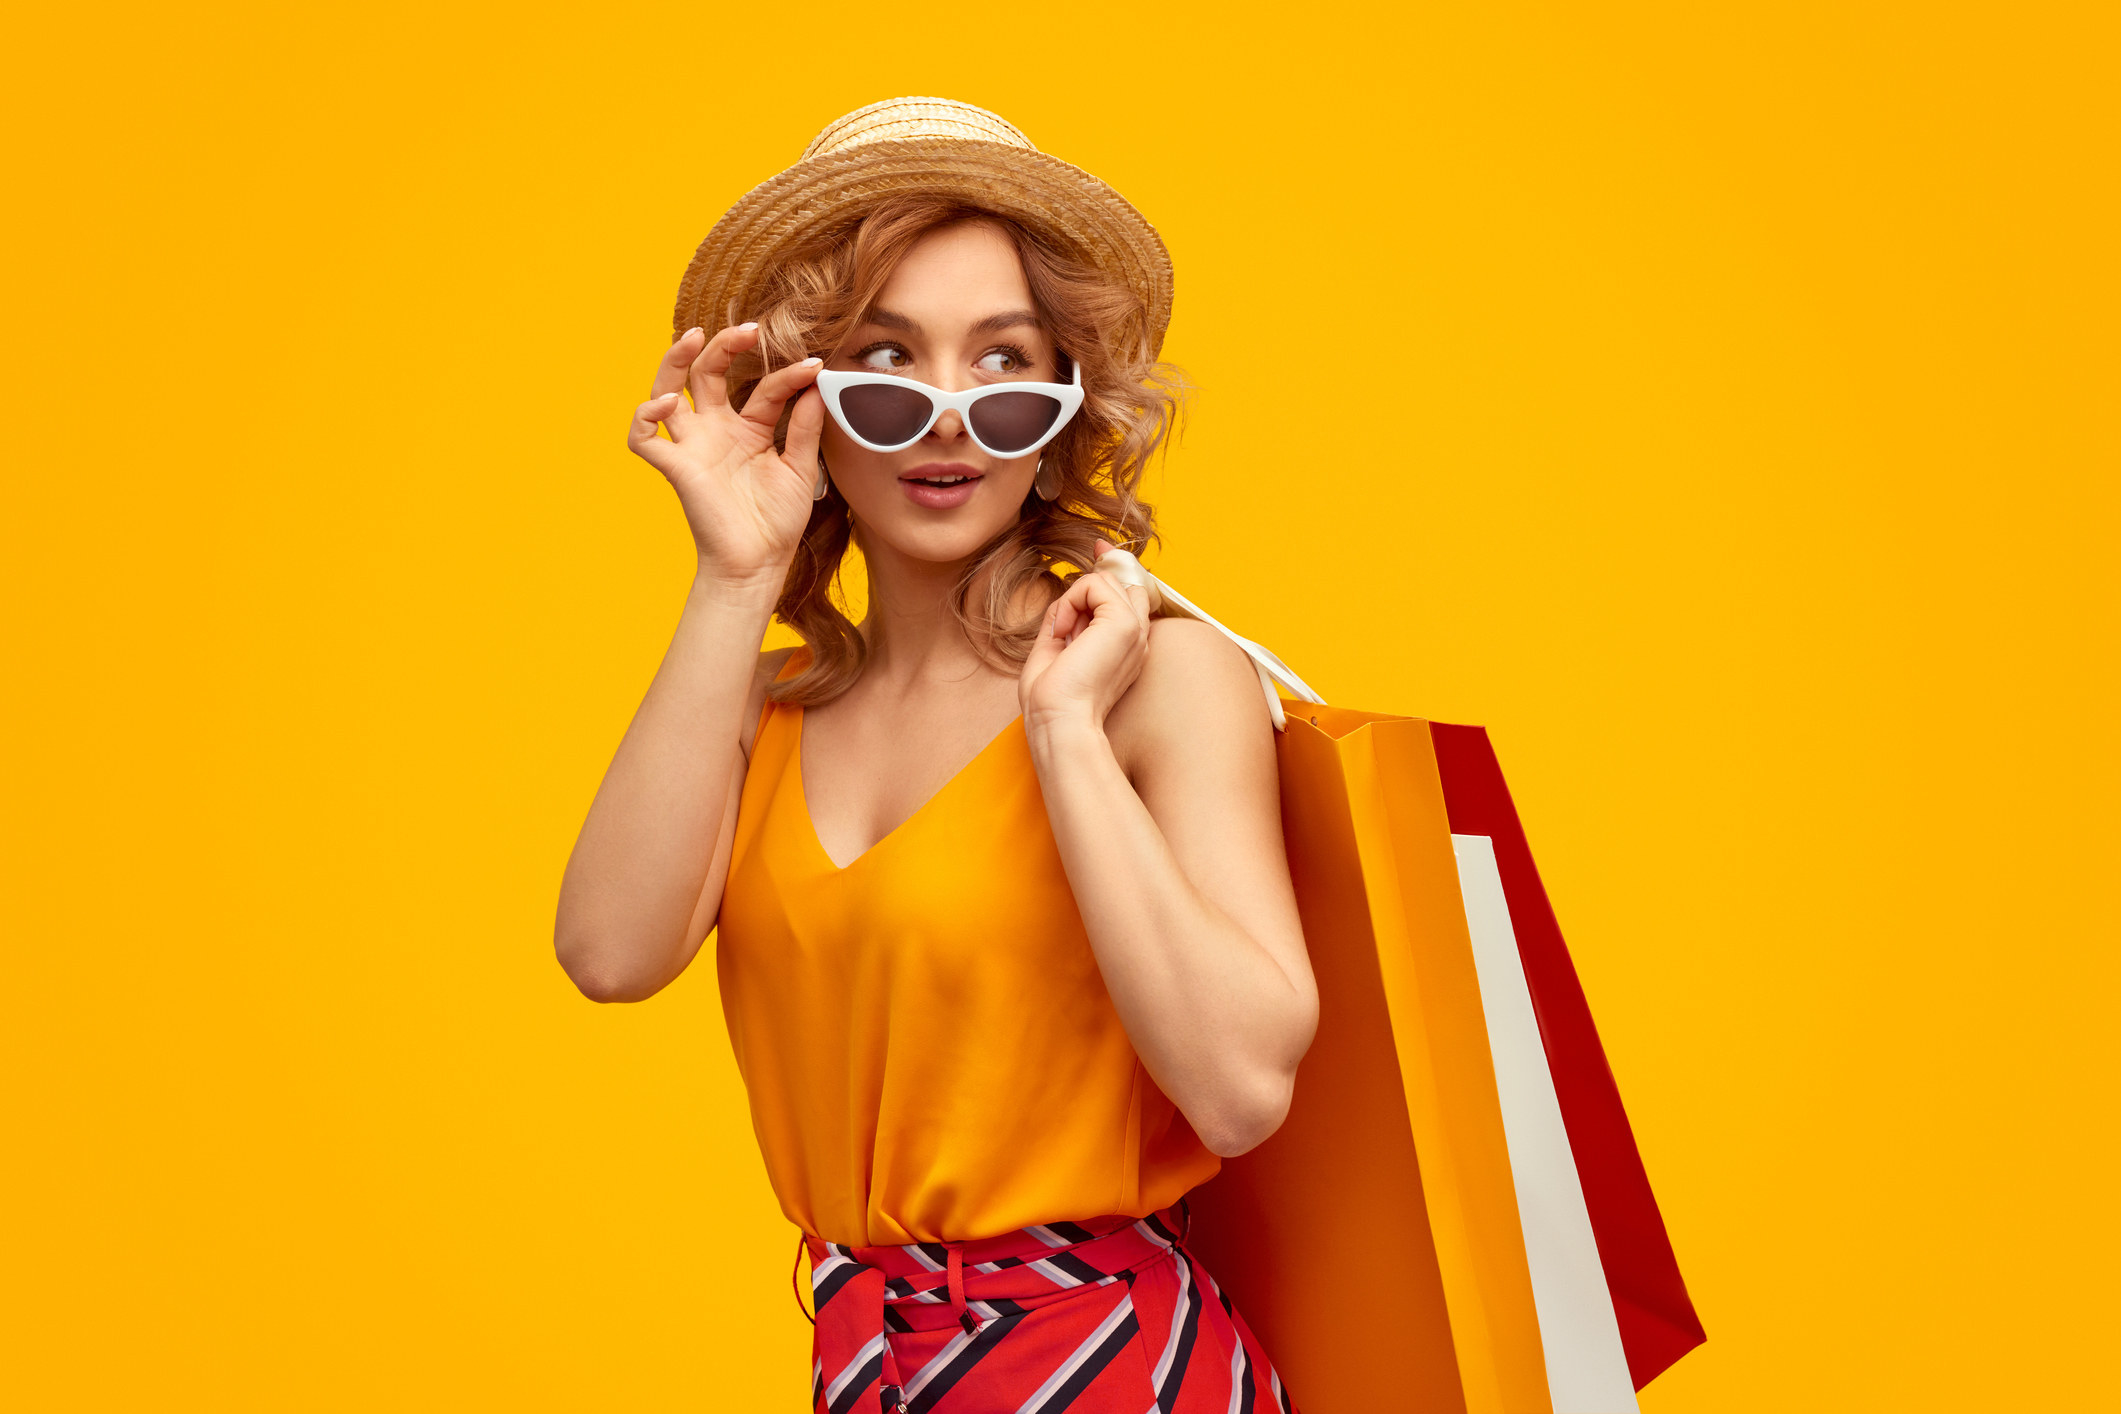 Trendy young woman with paper bags adjusting sunglasses and looking away over shoulder during shopping against bright yellow background